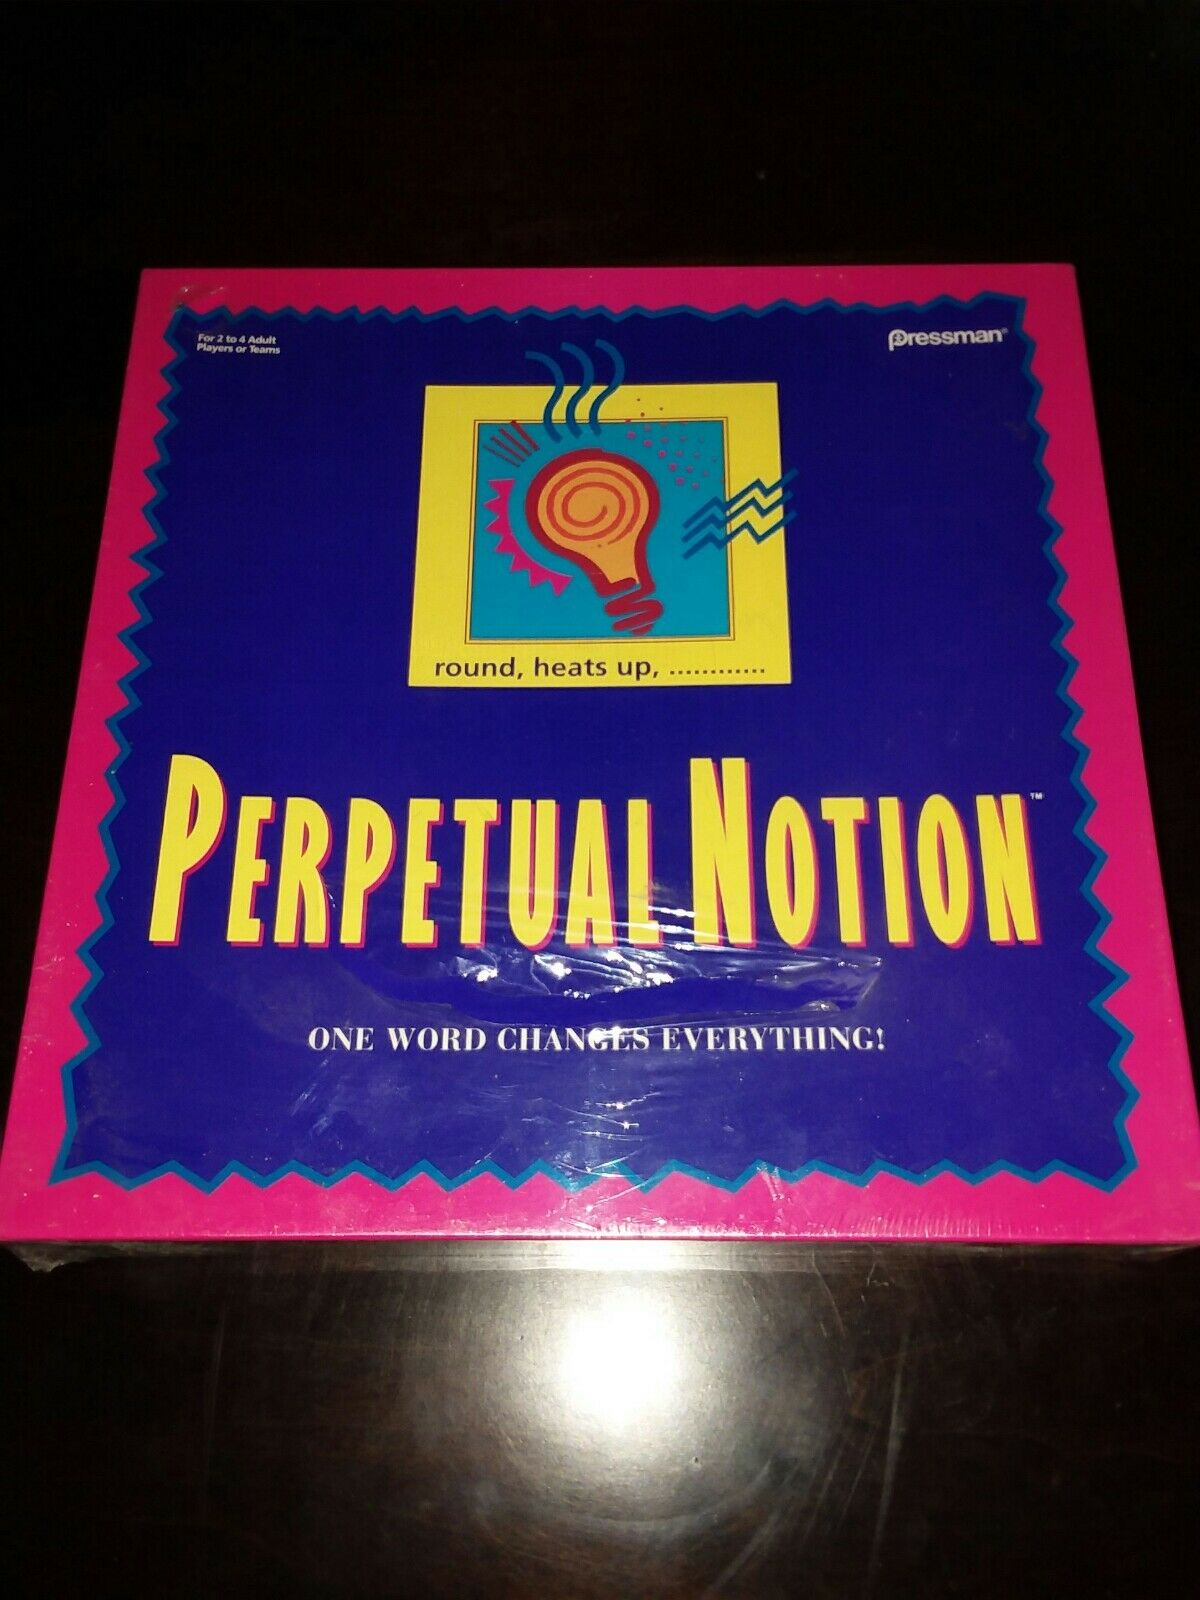 Vintage Perpetual Notion Board Game (1993) [Still Sealed]